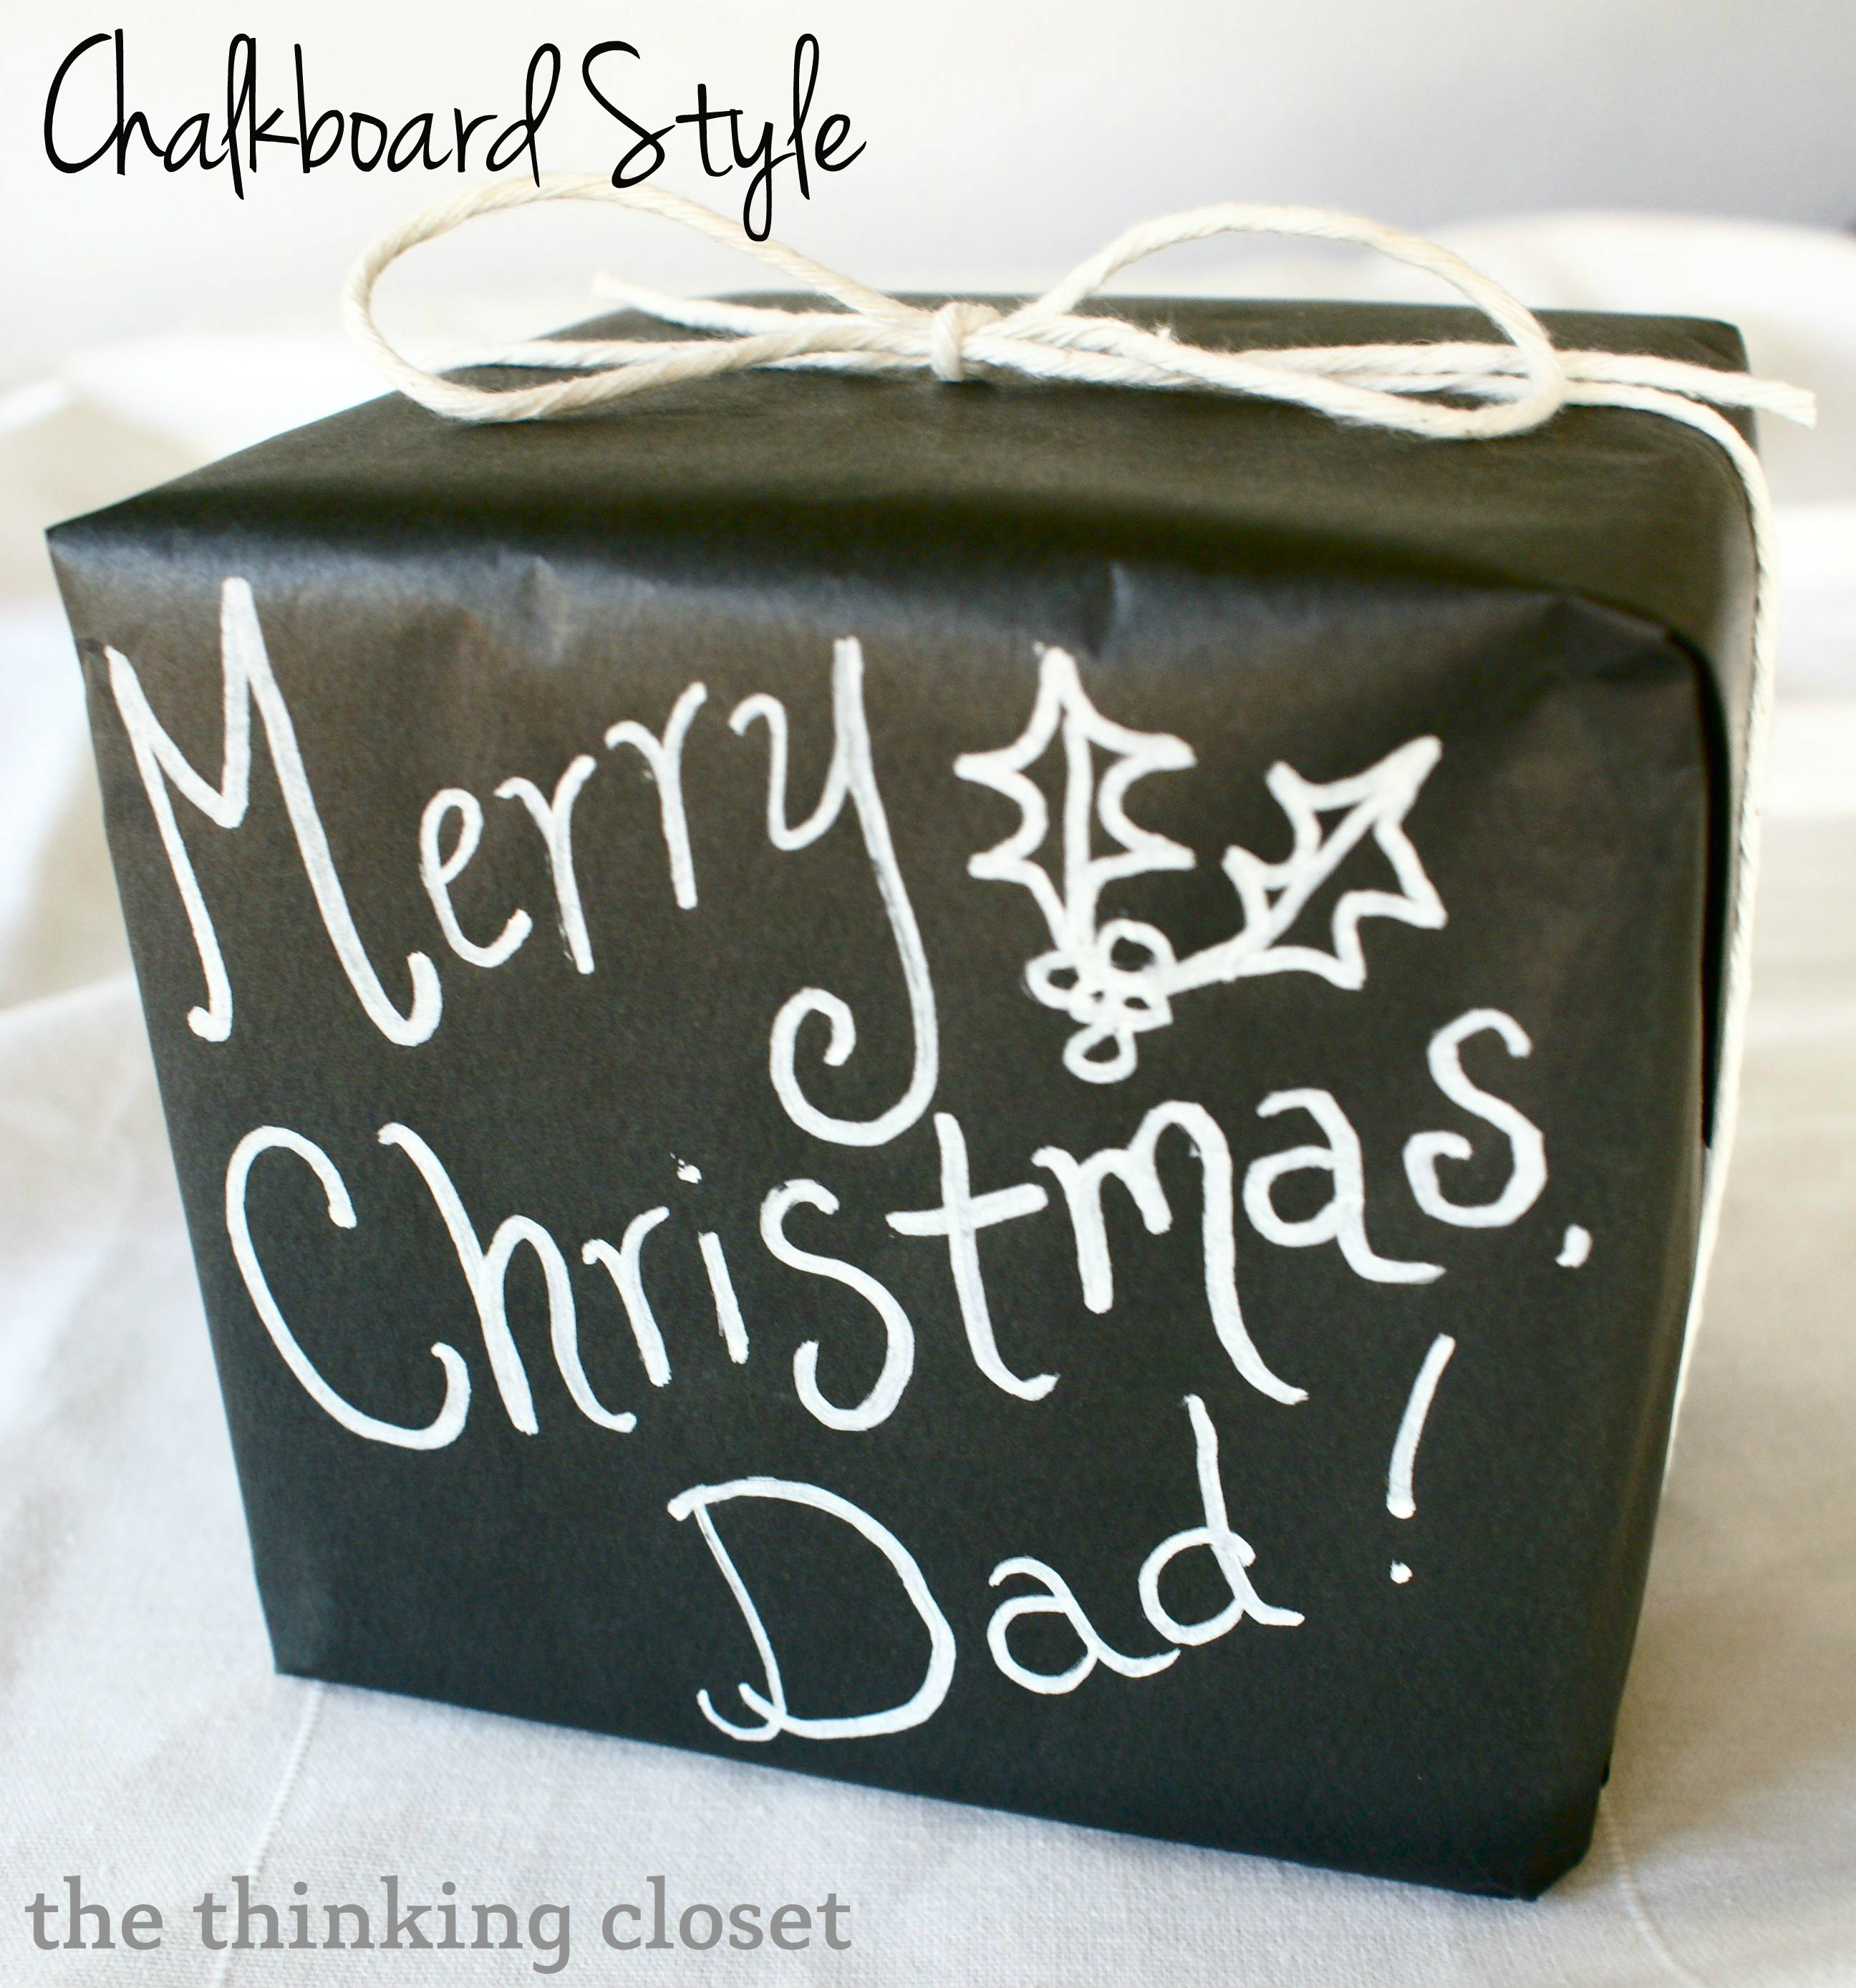 20 diy chalkboard projects the thinking closet diy chalkboard projects round up the thinking closet solutioingenieria Gallery